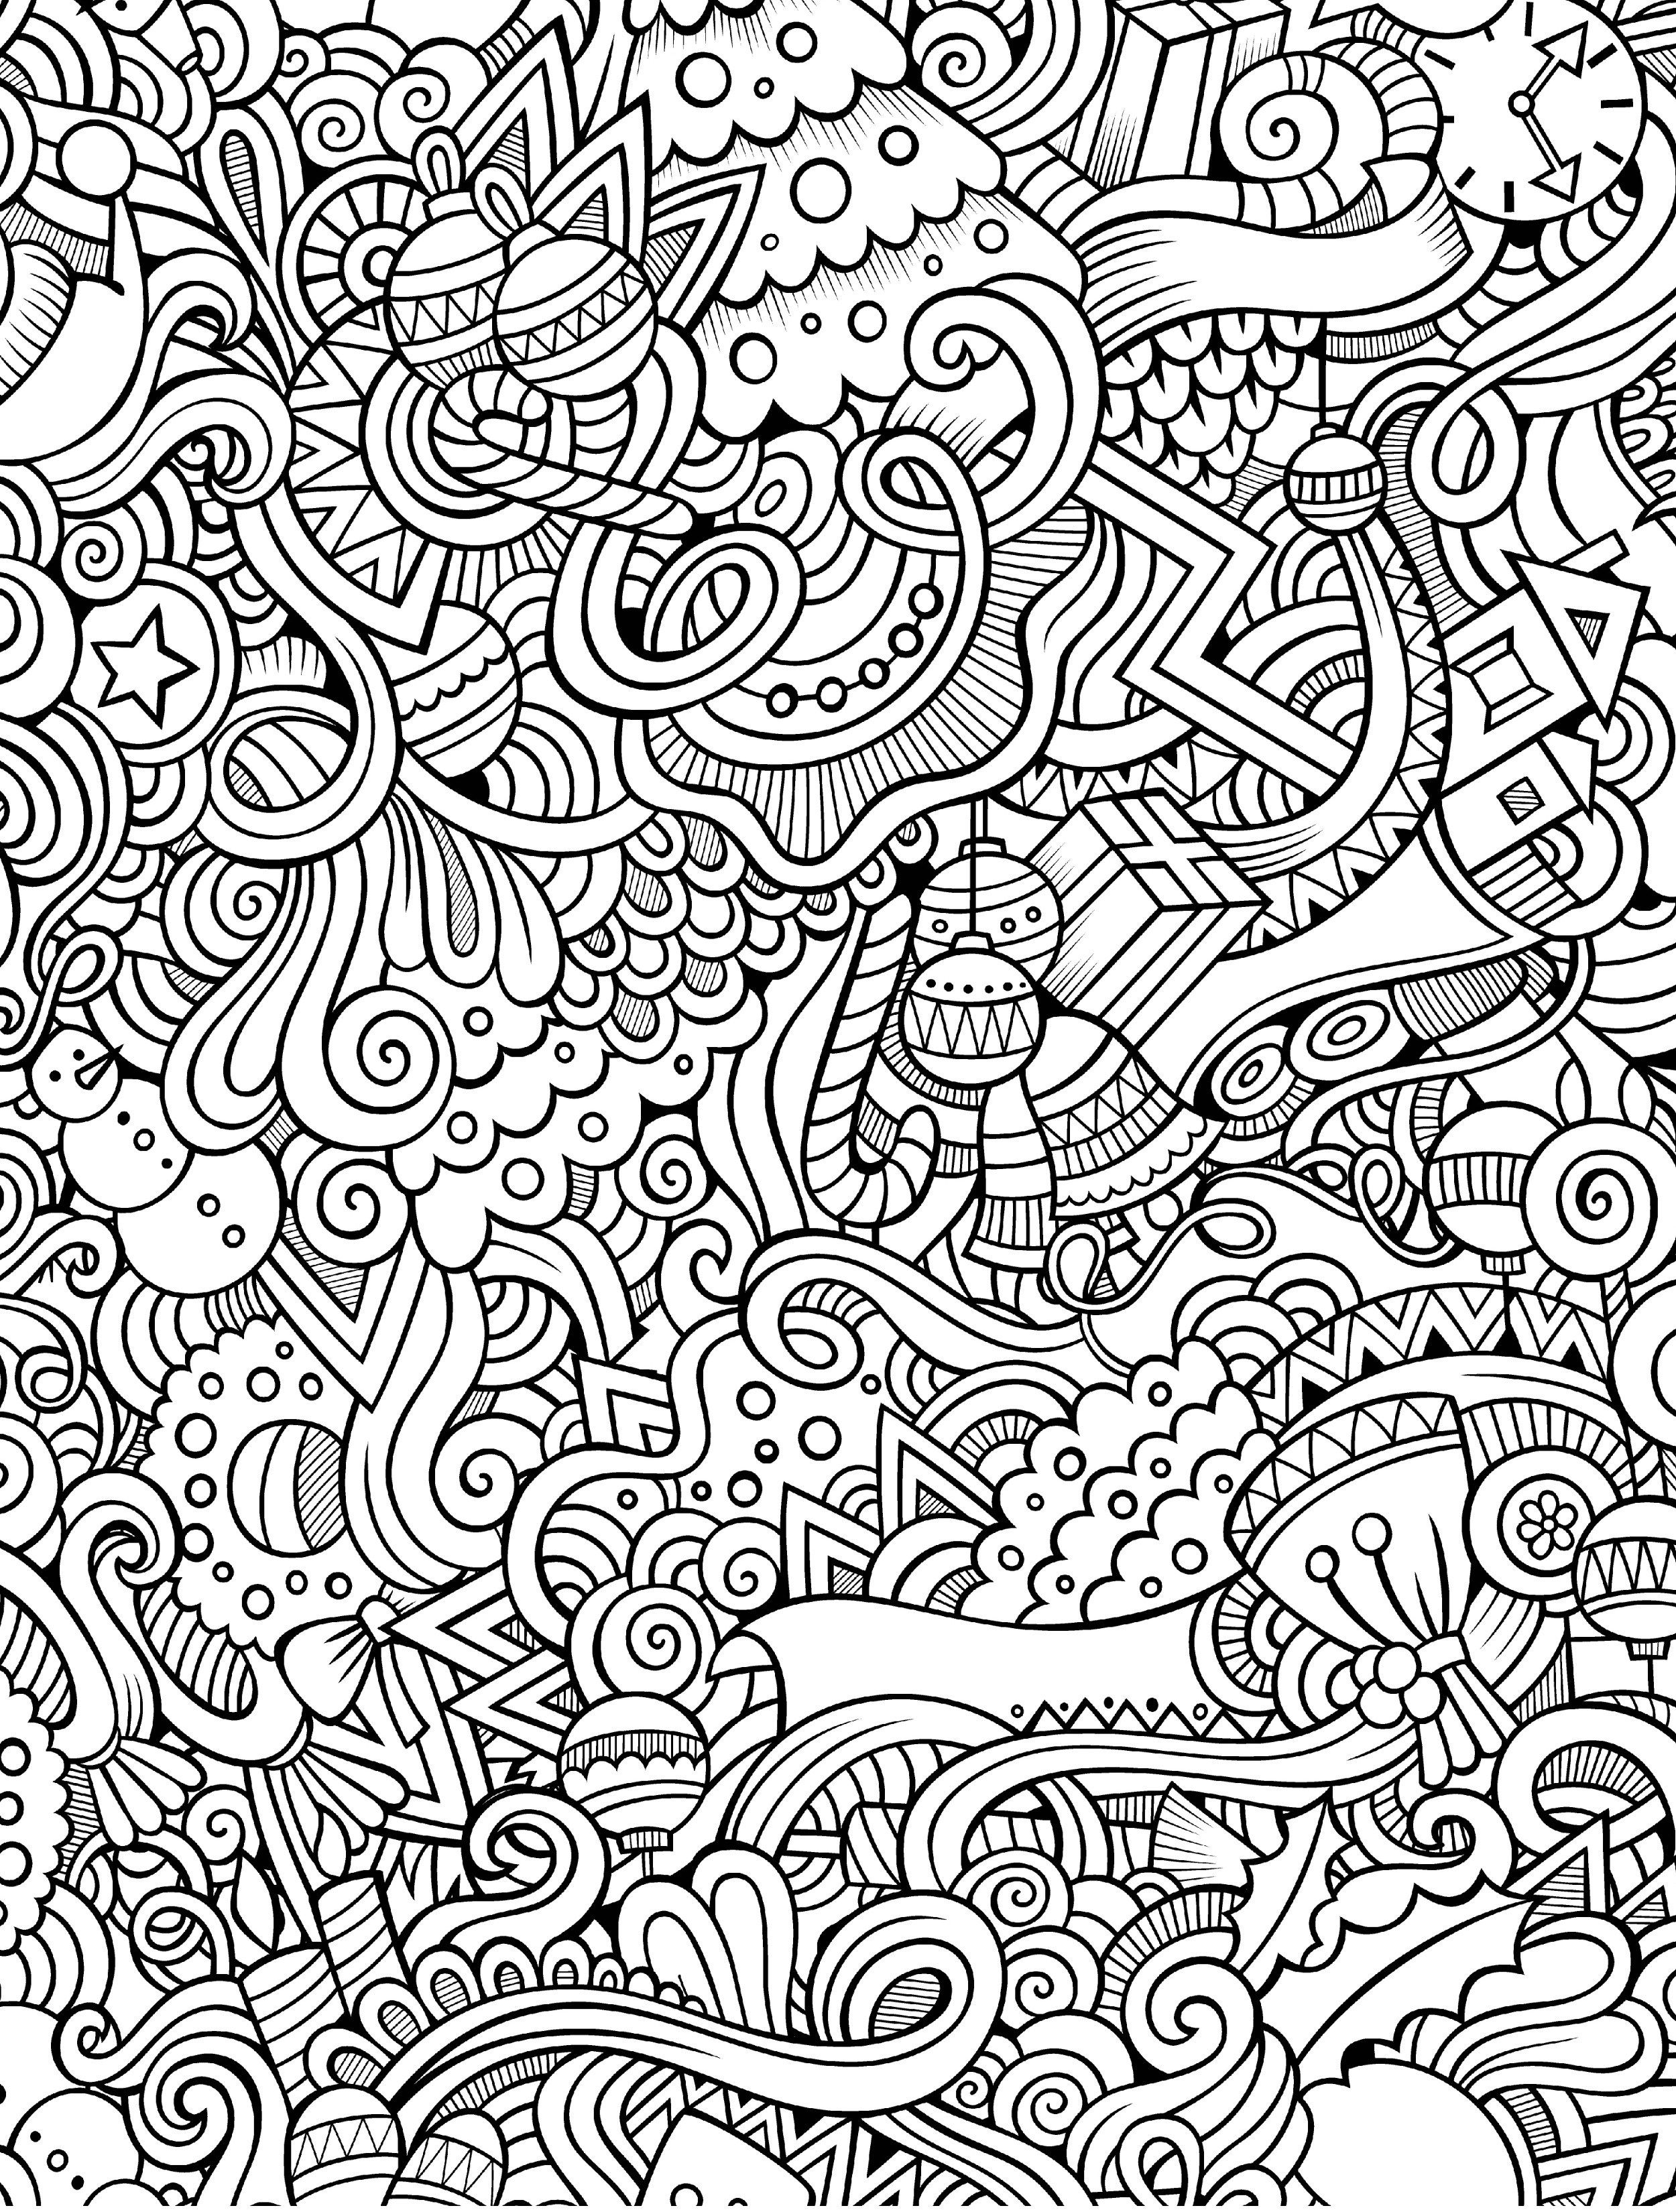 10 Free Printable Holiday Adult Coloring Pages | Coloring pages ...